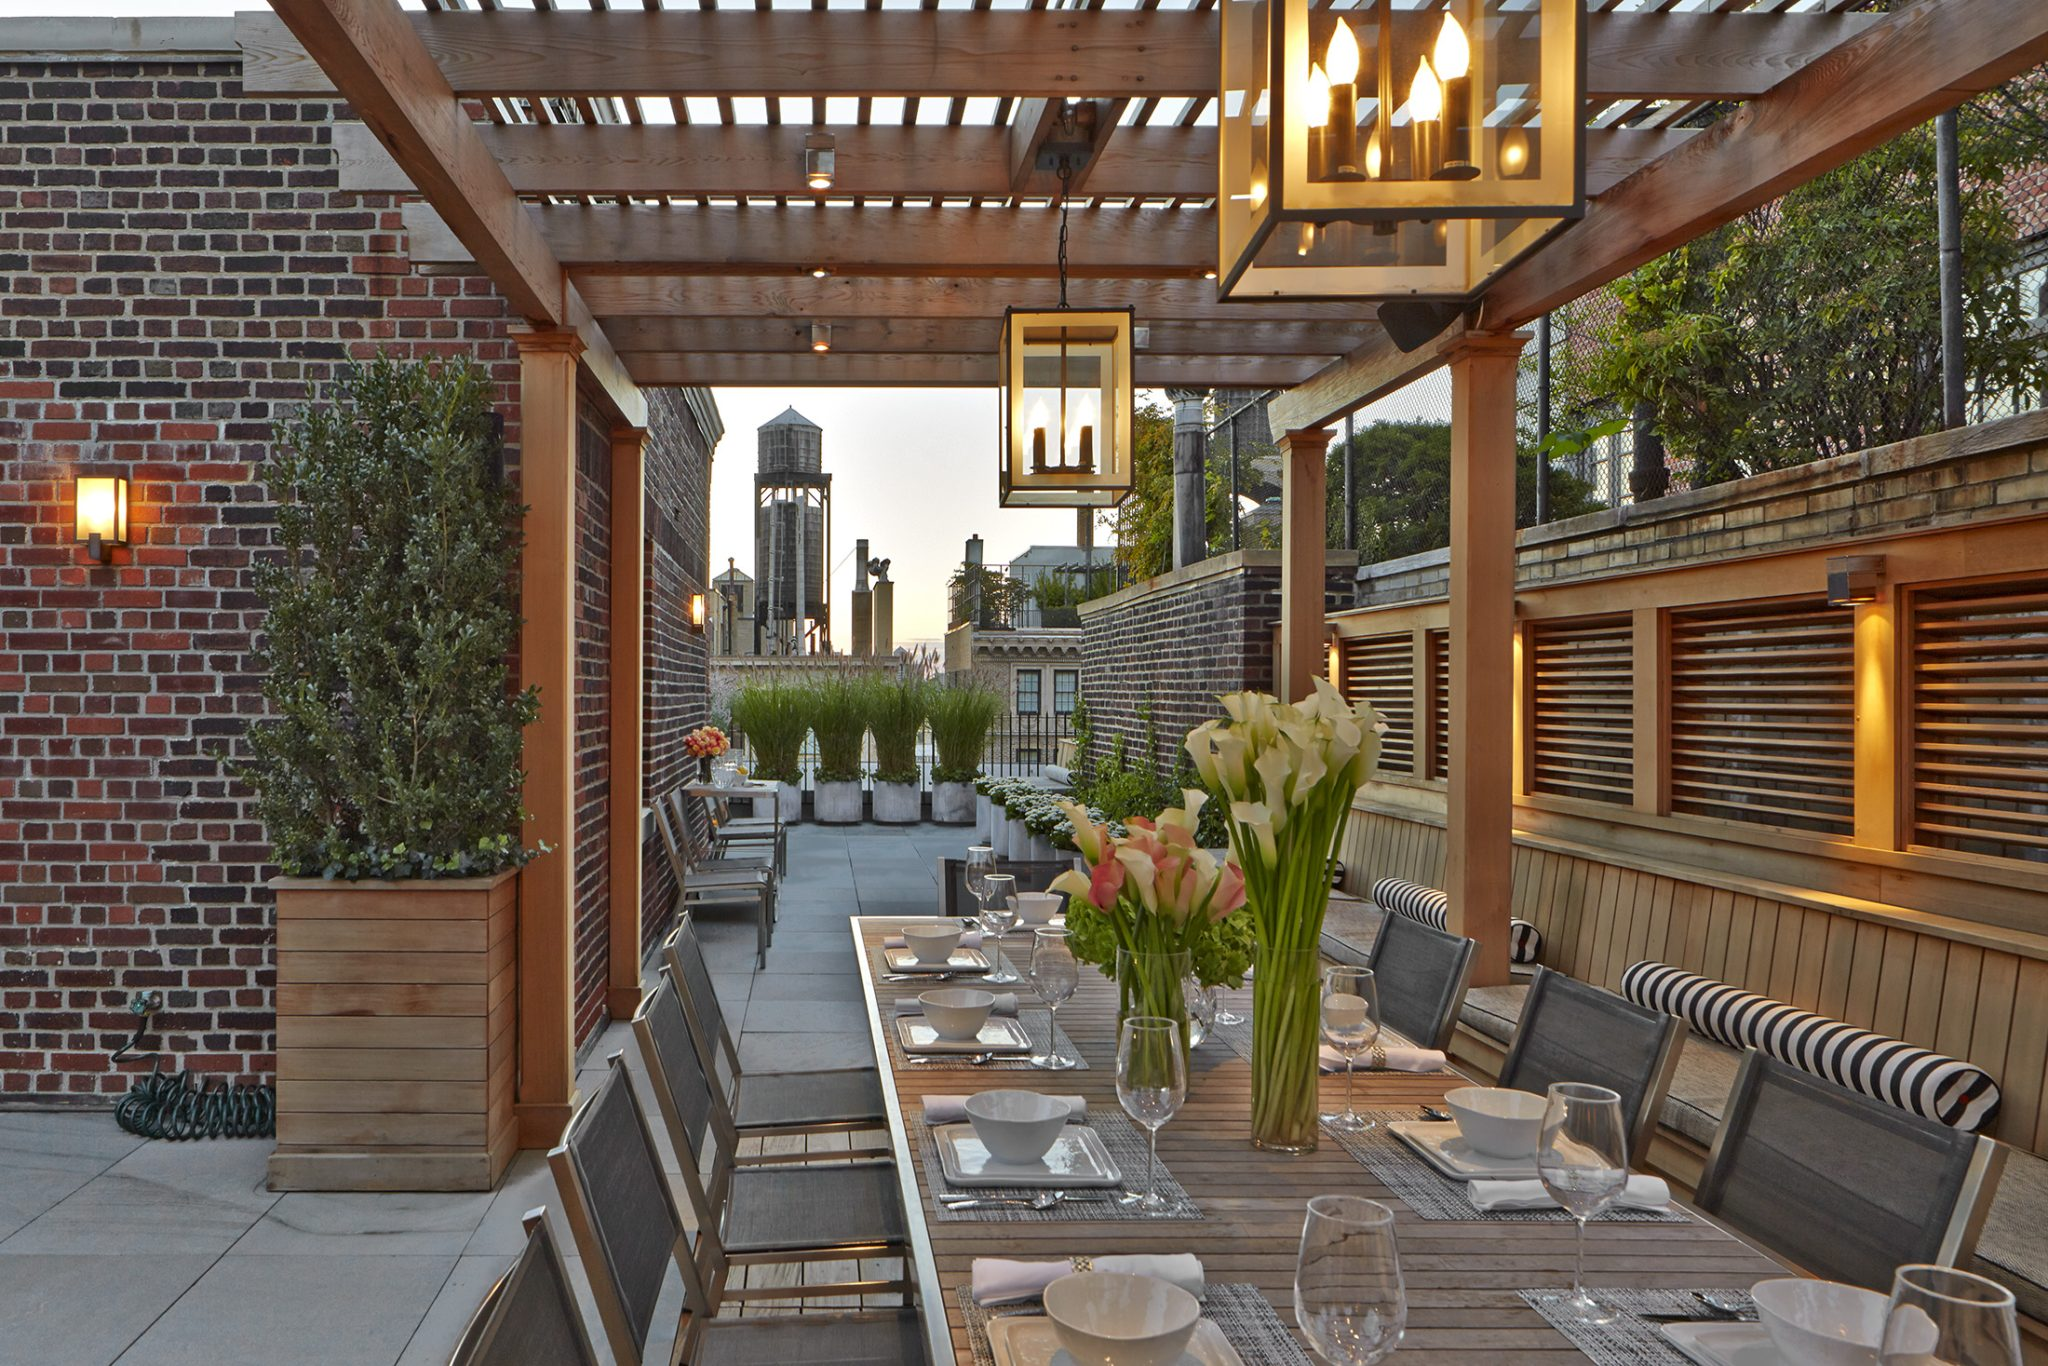 City terrace with alfresco dining and contemporary pergola by Hollander Design Landscape Architects